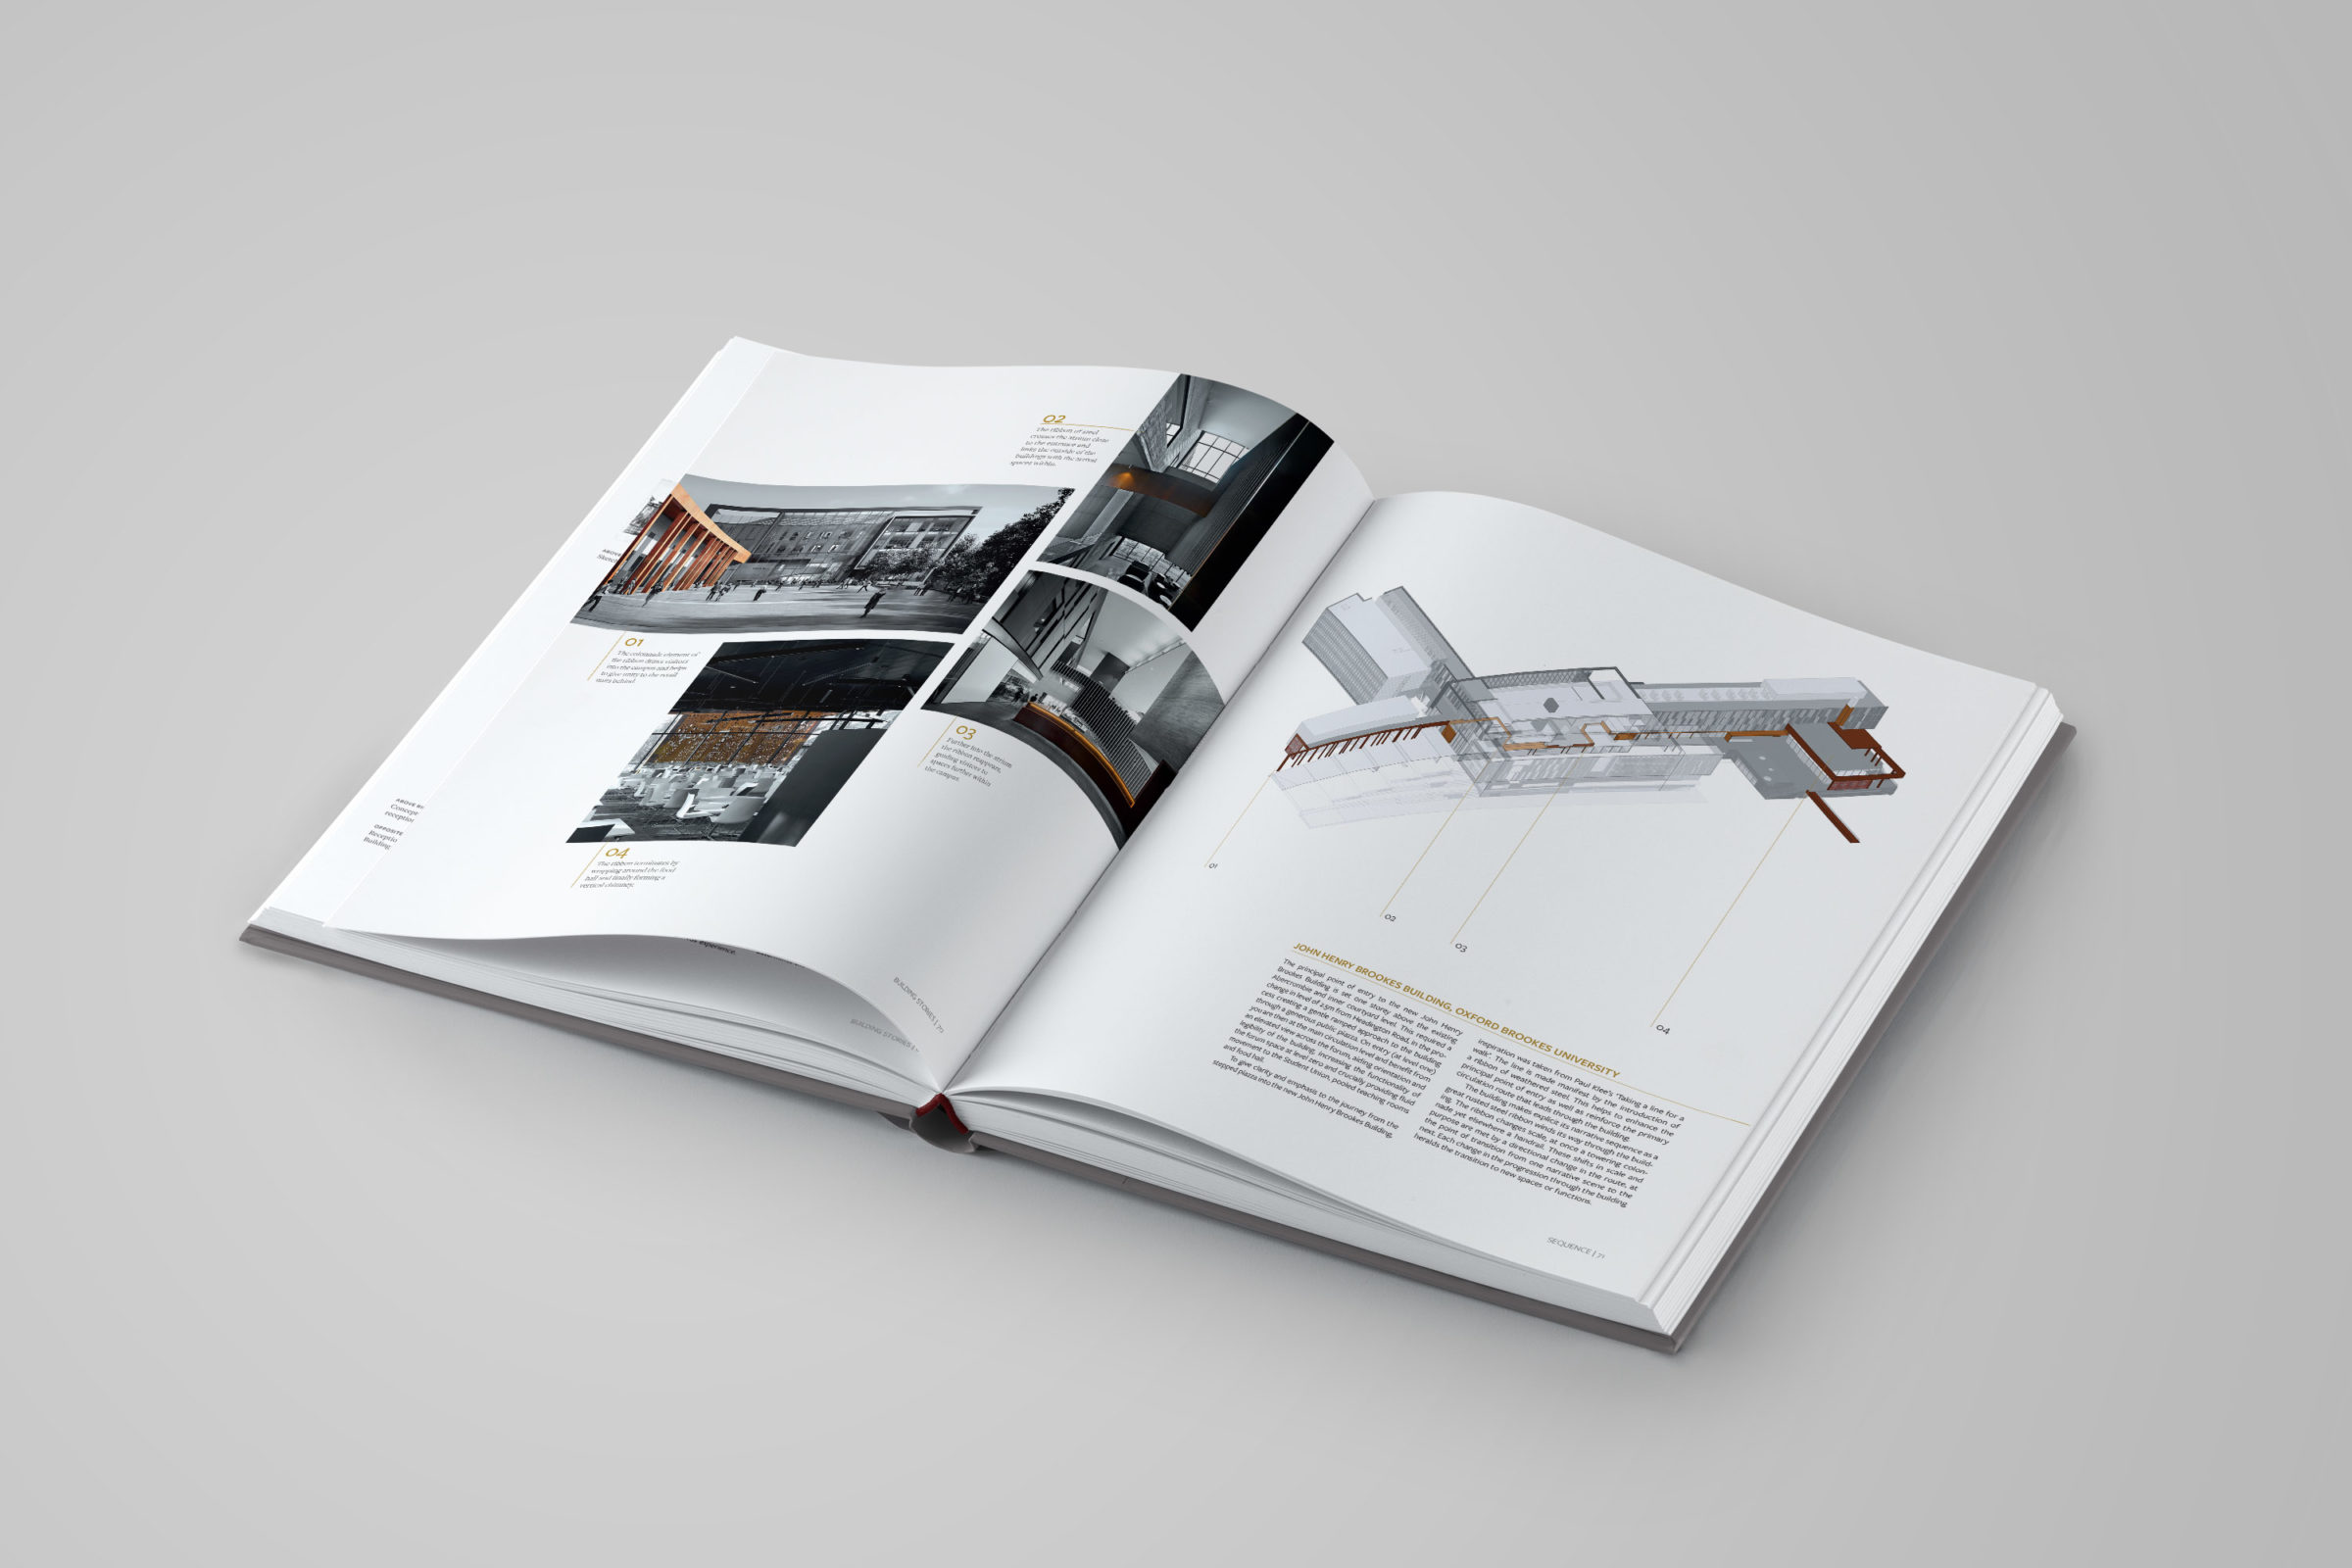 hard cover open book mockup design engine architects